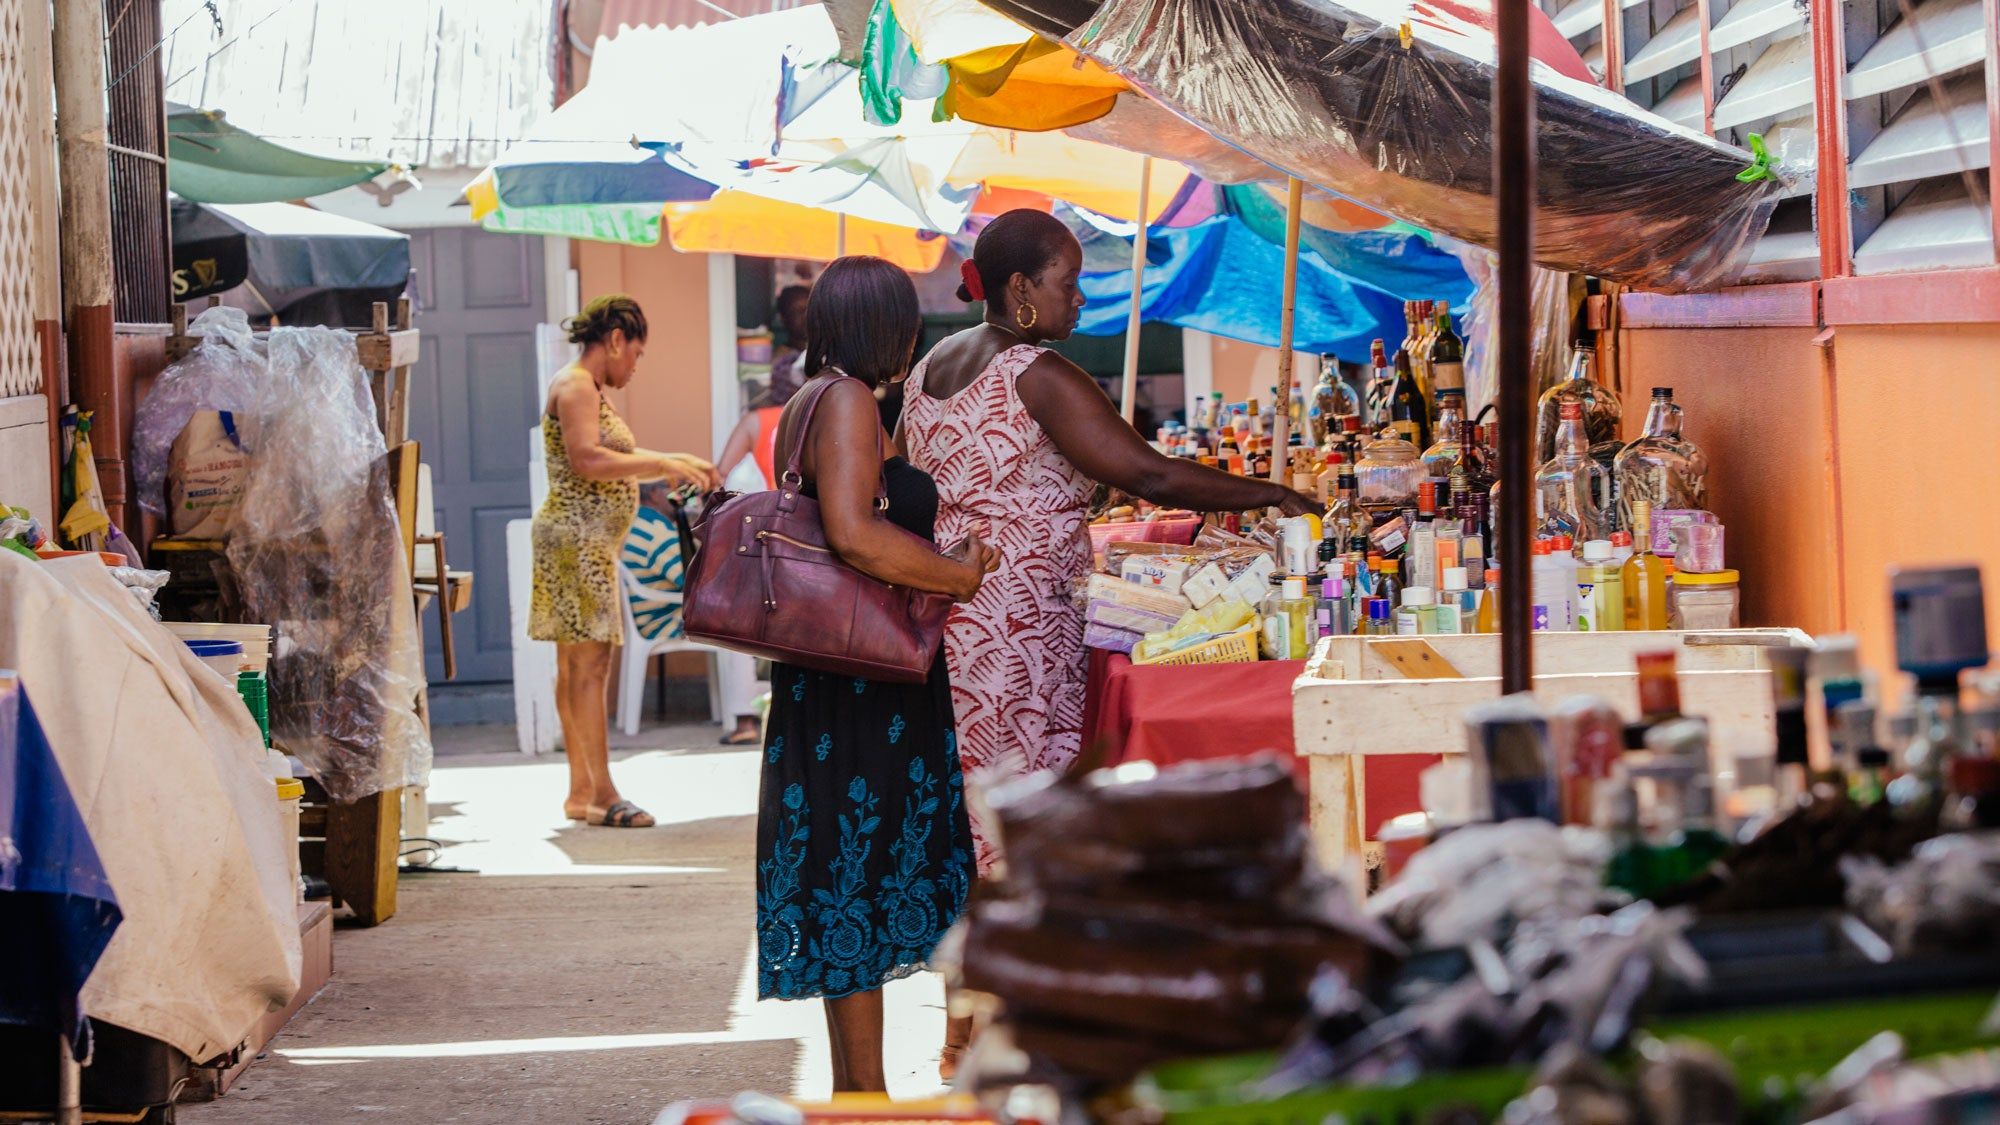 Why You Should Skip St. Lucia's Tourist Spots to Wander Through its Central Market